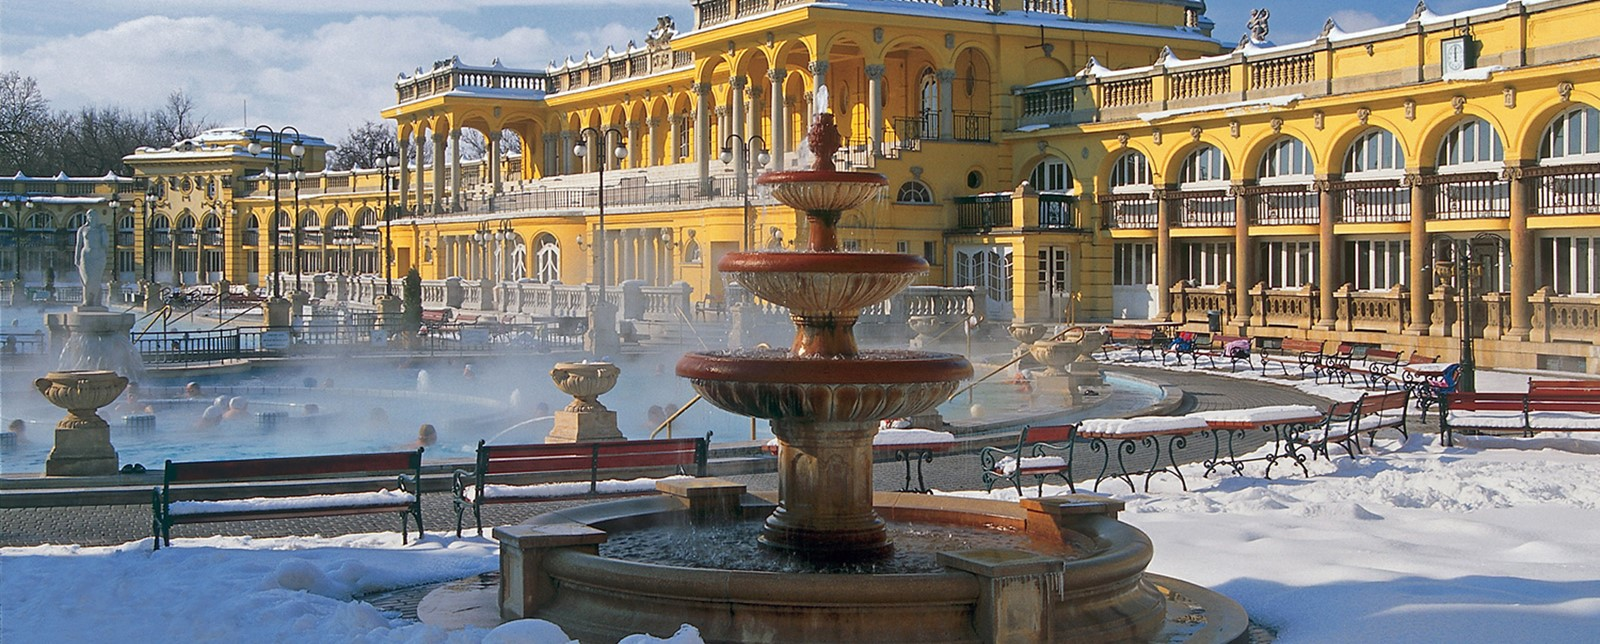 Szechenyi baths in winter